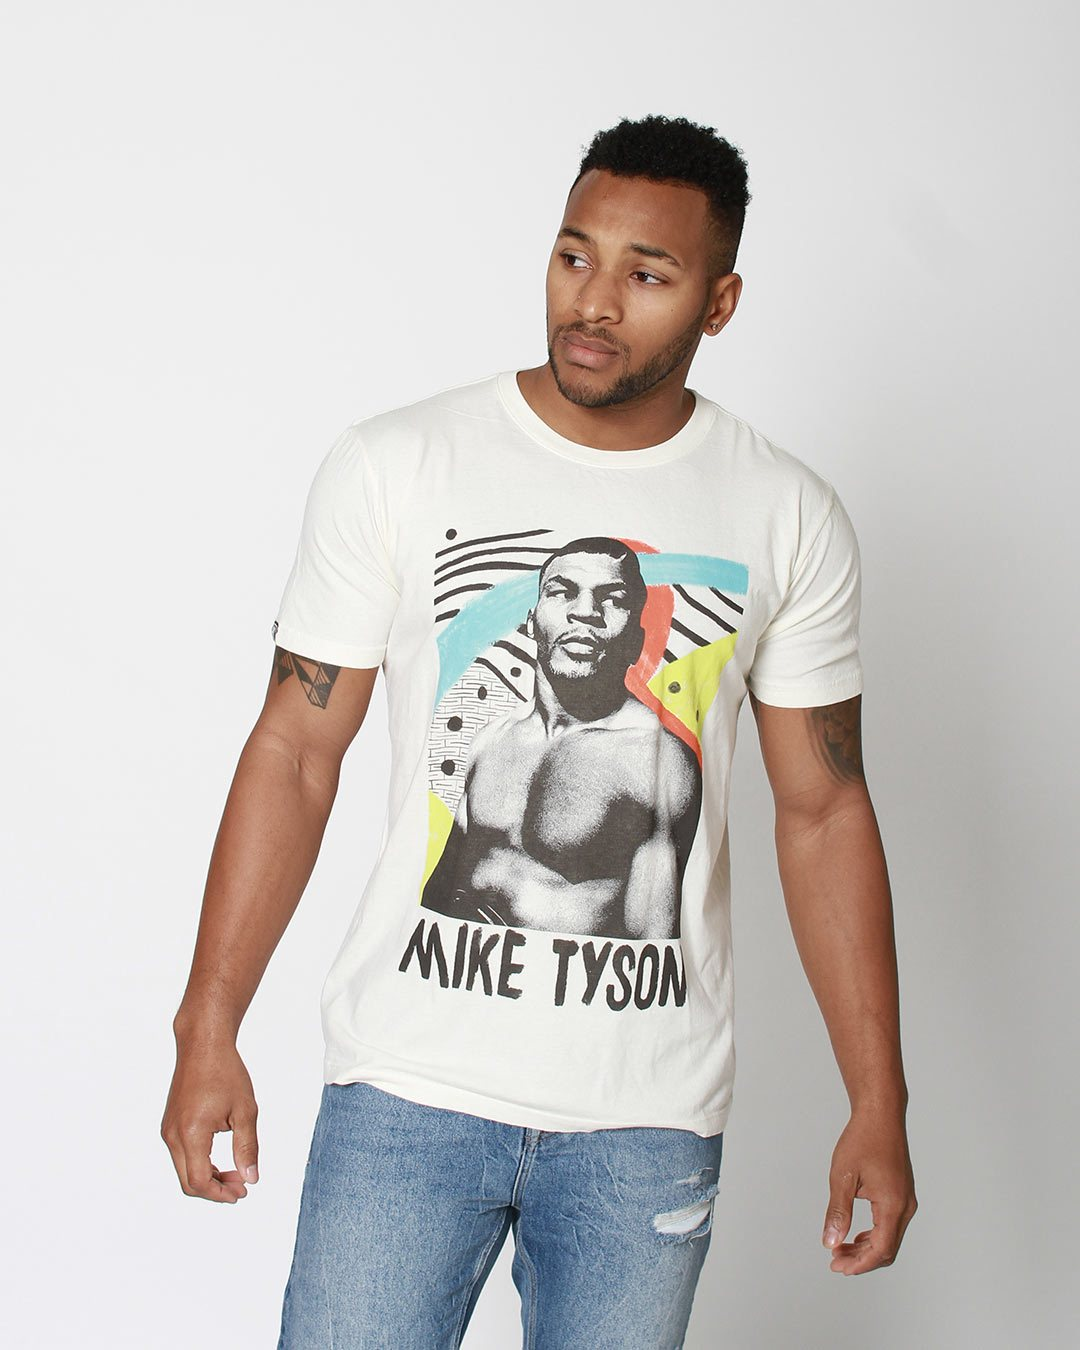 Mike Tyson Painted Portrait Tee